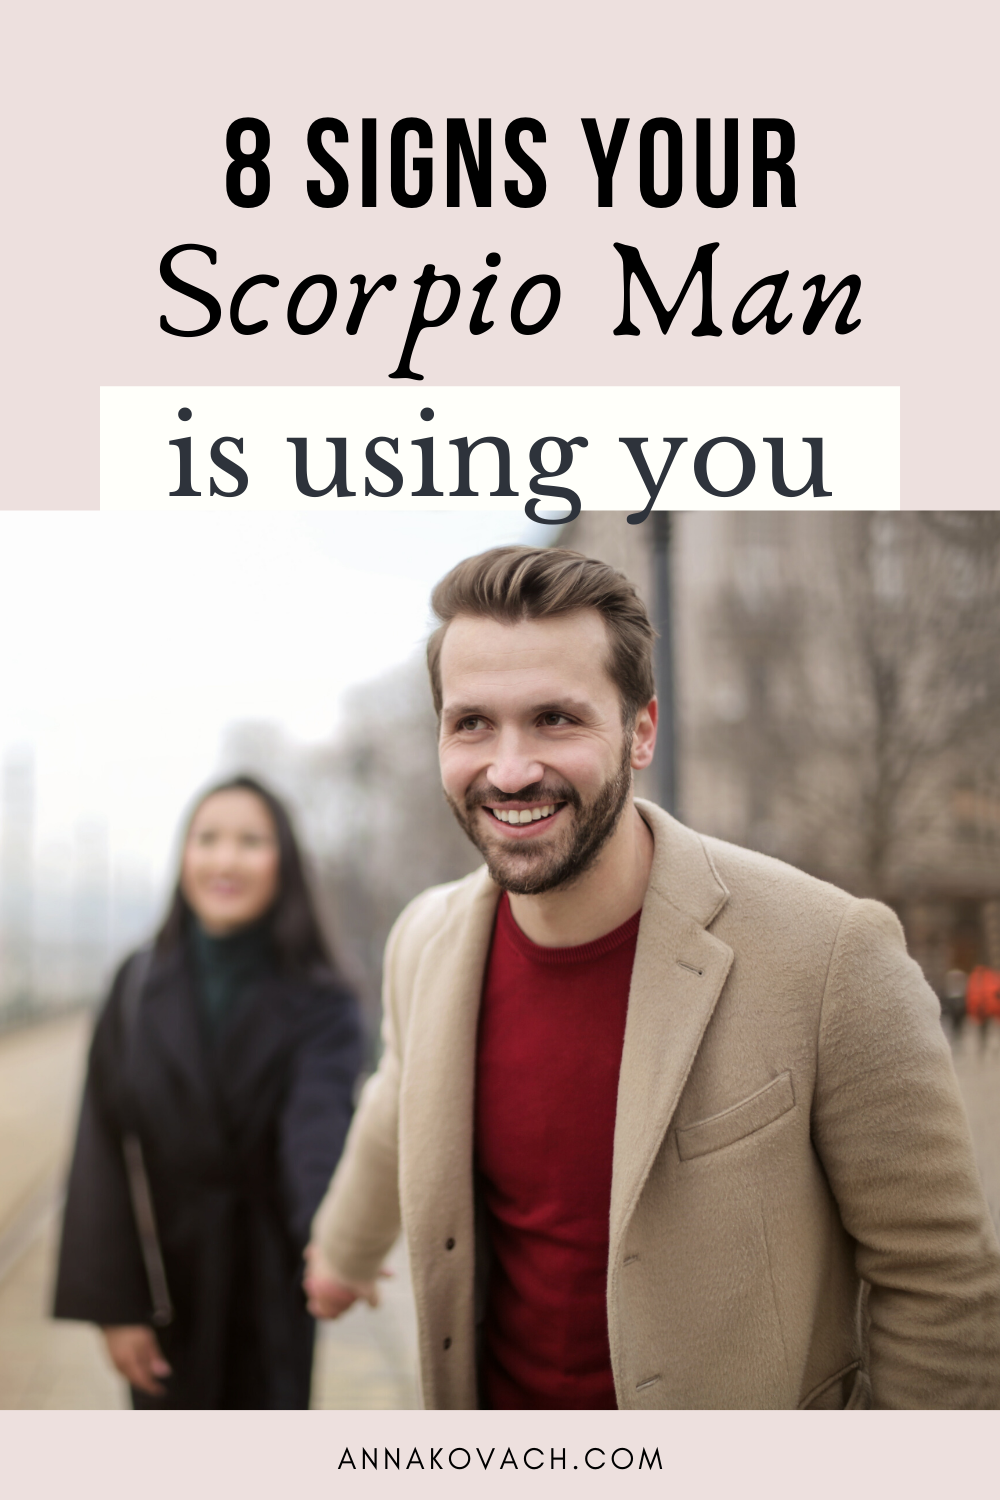 Is Your Scorpio Man Just Using You? 5 Signs to Look For in